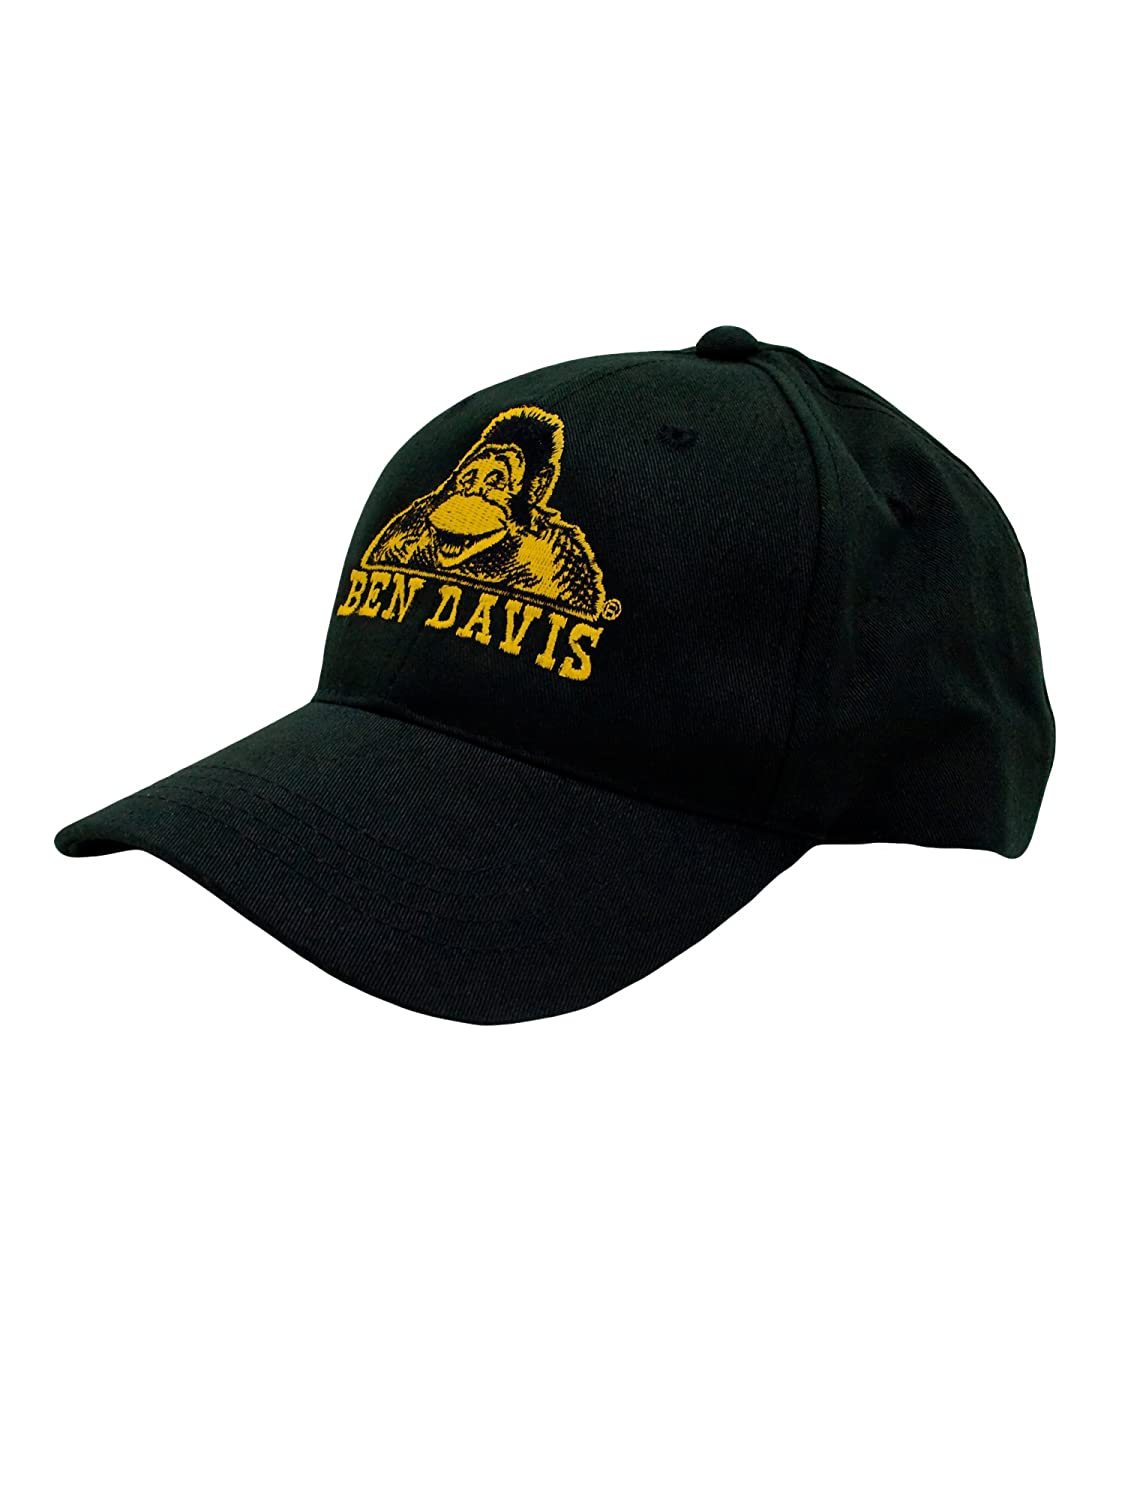 5cd1599c Ben Davis Gorilla Logo Flexfit Fitted Baseball Cap at Amazon Men's Clothing  store: